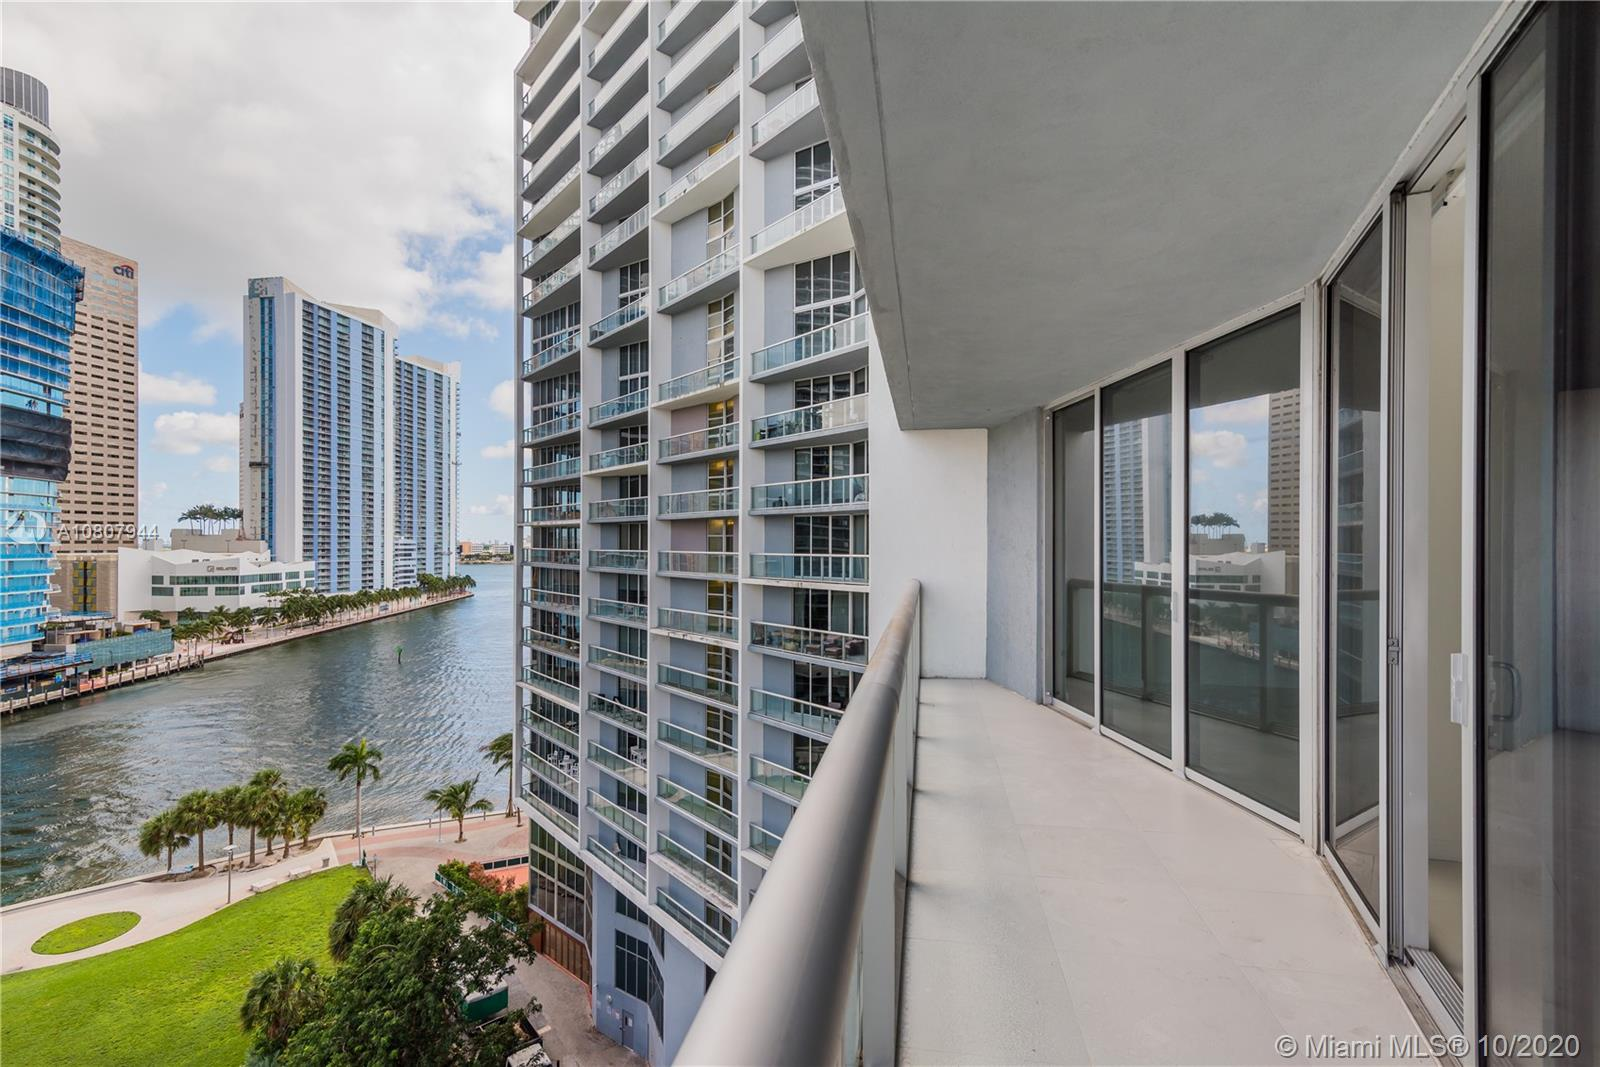 Icon Brickell 1 #1014 - 475 Brickell Ave #1014, Miami, FL 33131